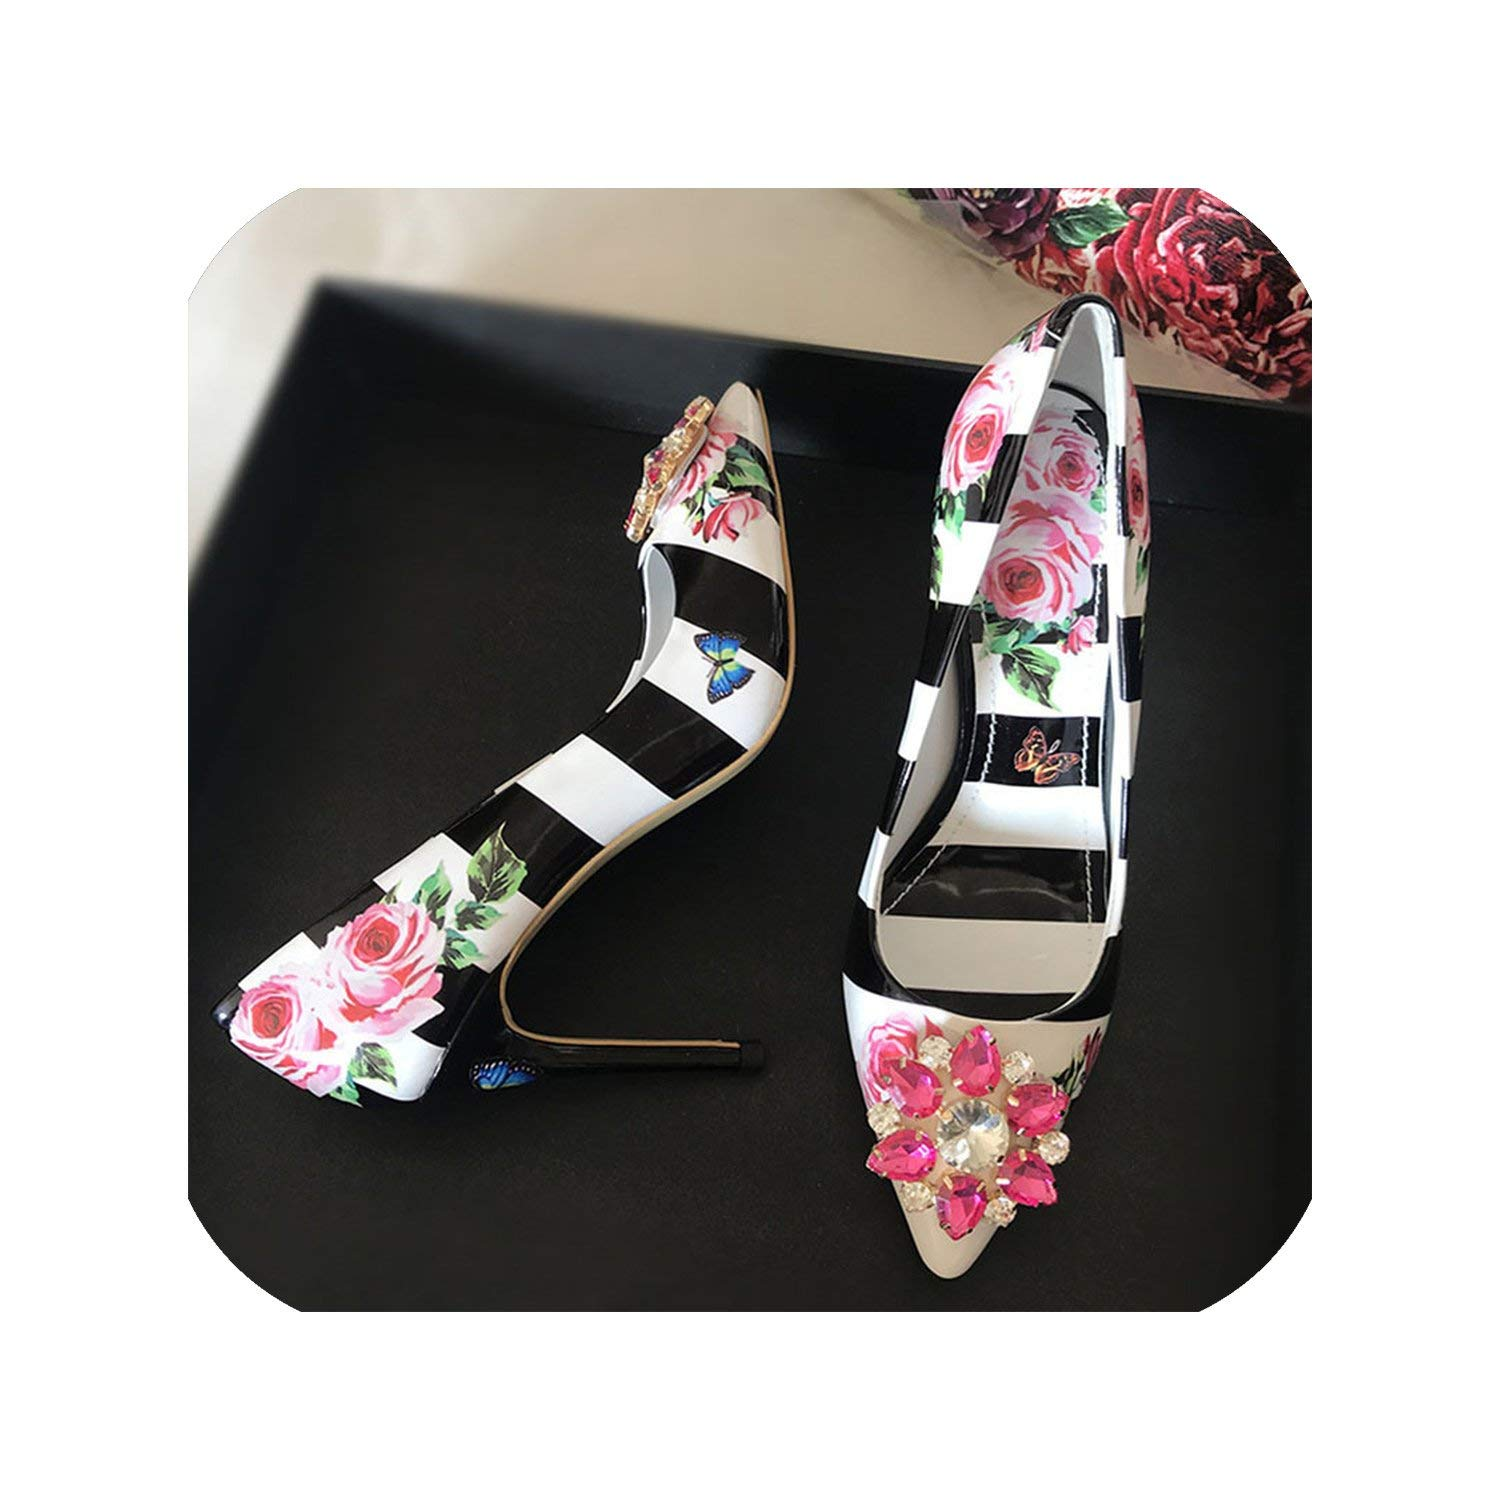 Black 10cm The Hot Rock-sandals Printed color High Heel shoes Woman Point Toe Shallow Thin Heel Bling Crystal Wedding shoes Women